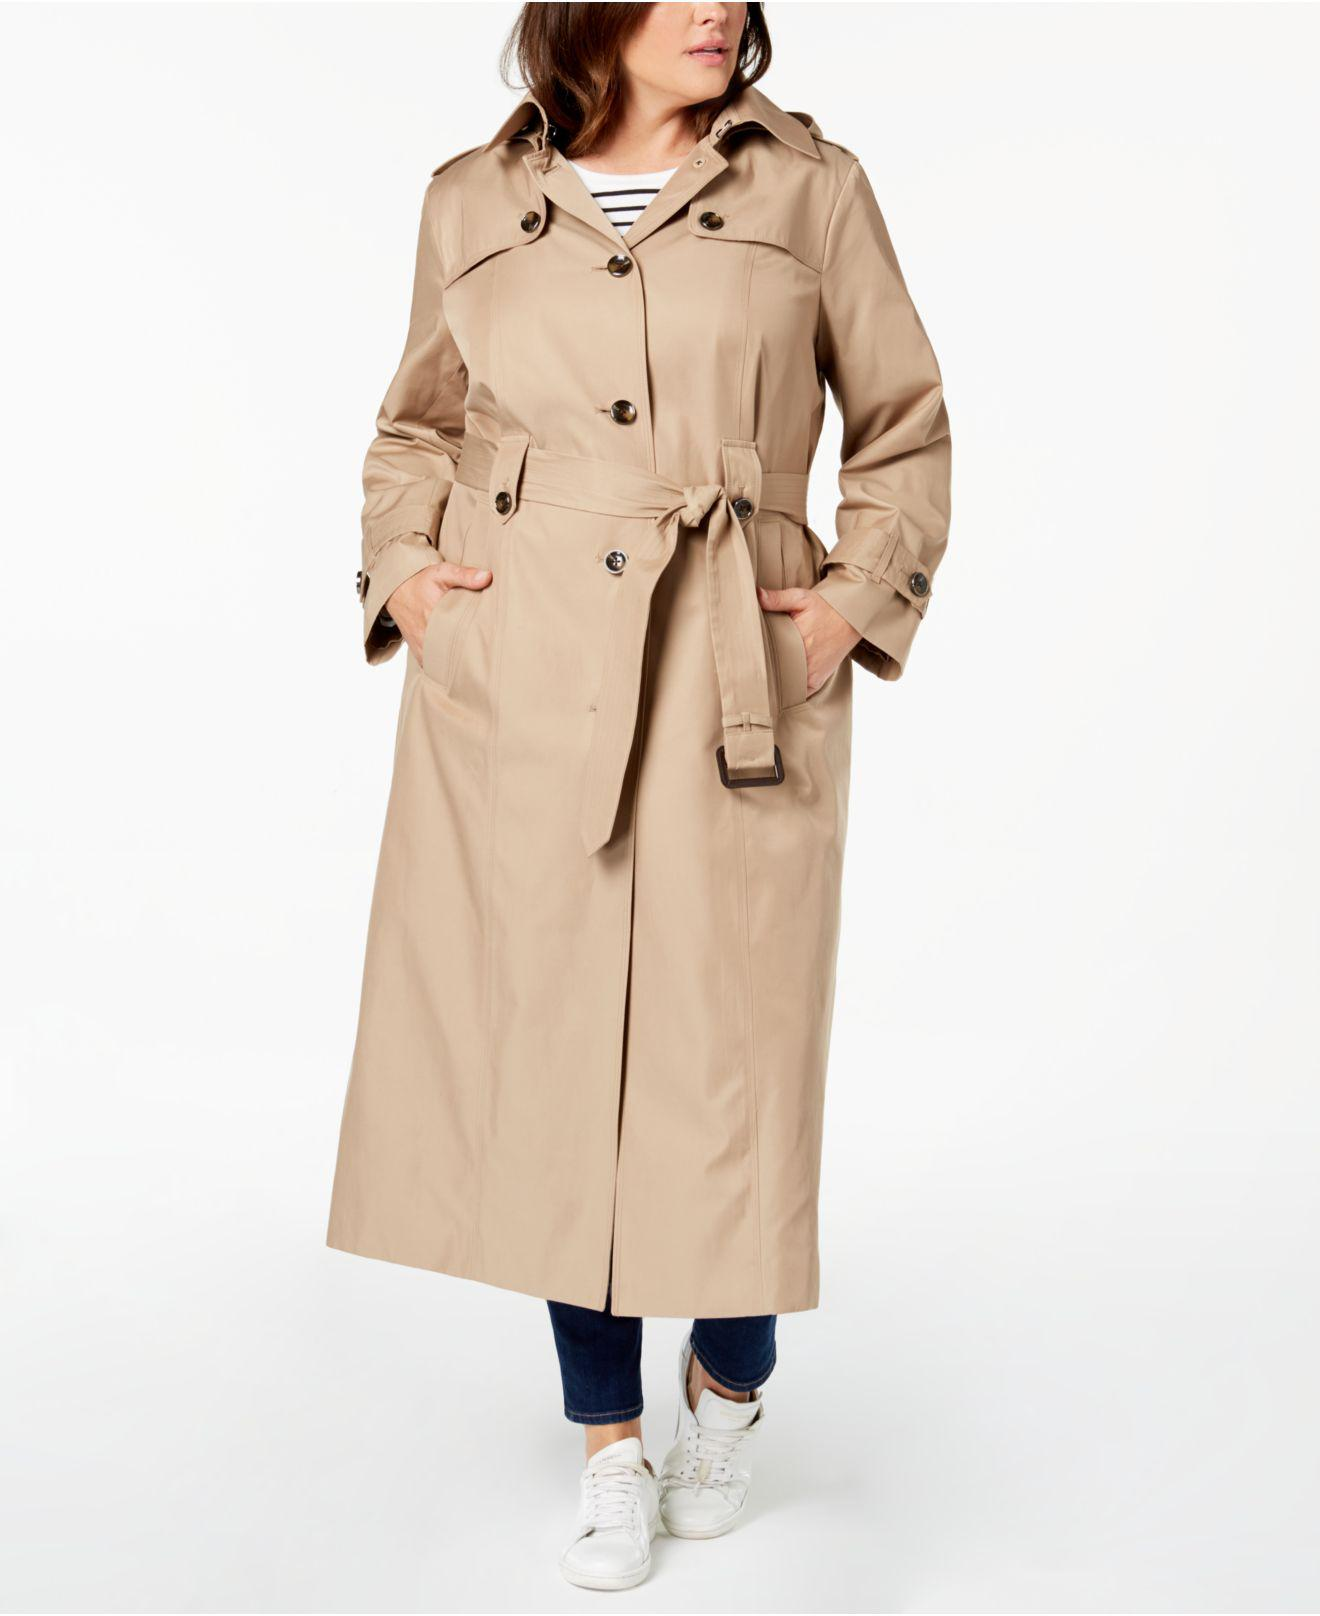 e198d9e9343 Lyst - London Fog Plus Size Belted Maxi Trench Coat in Natural ...